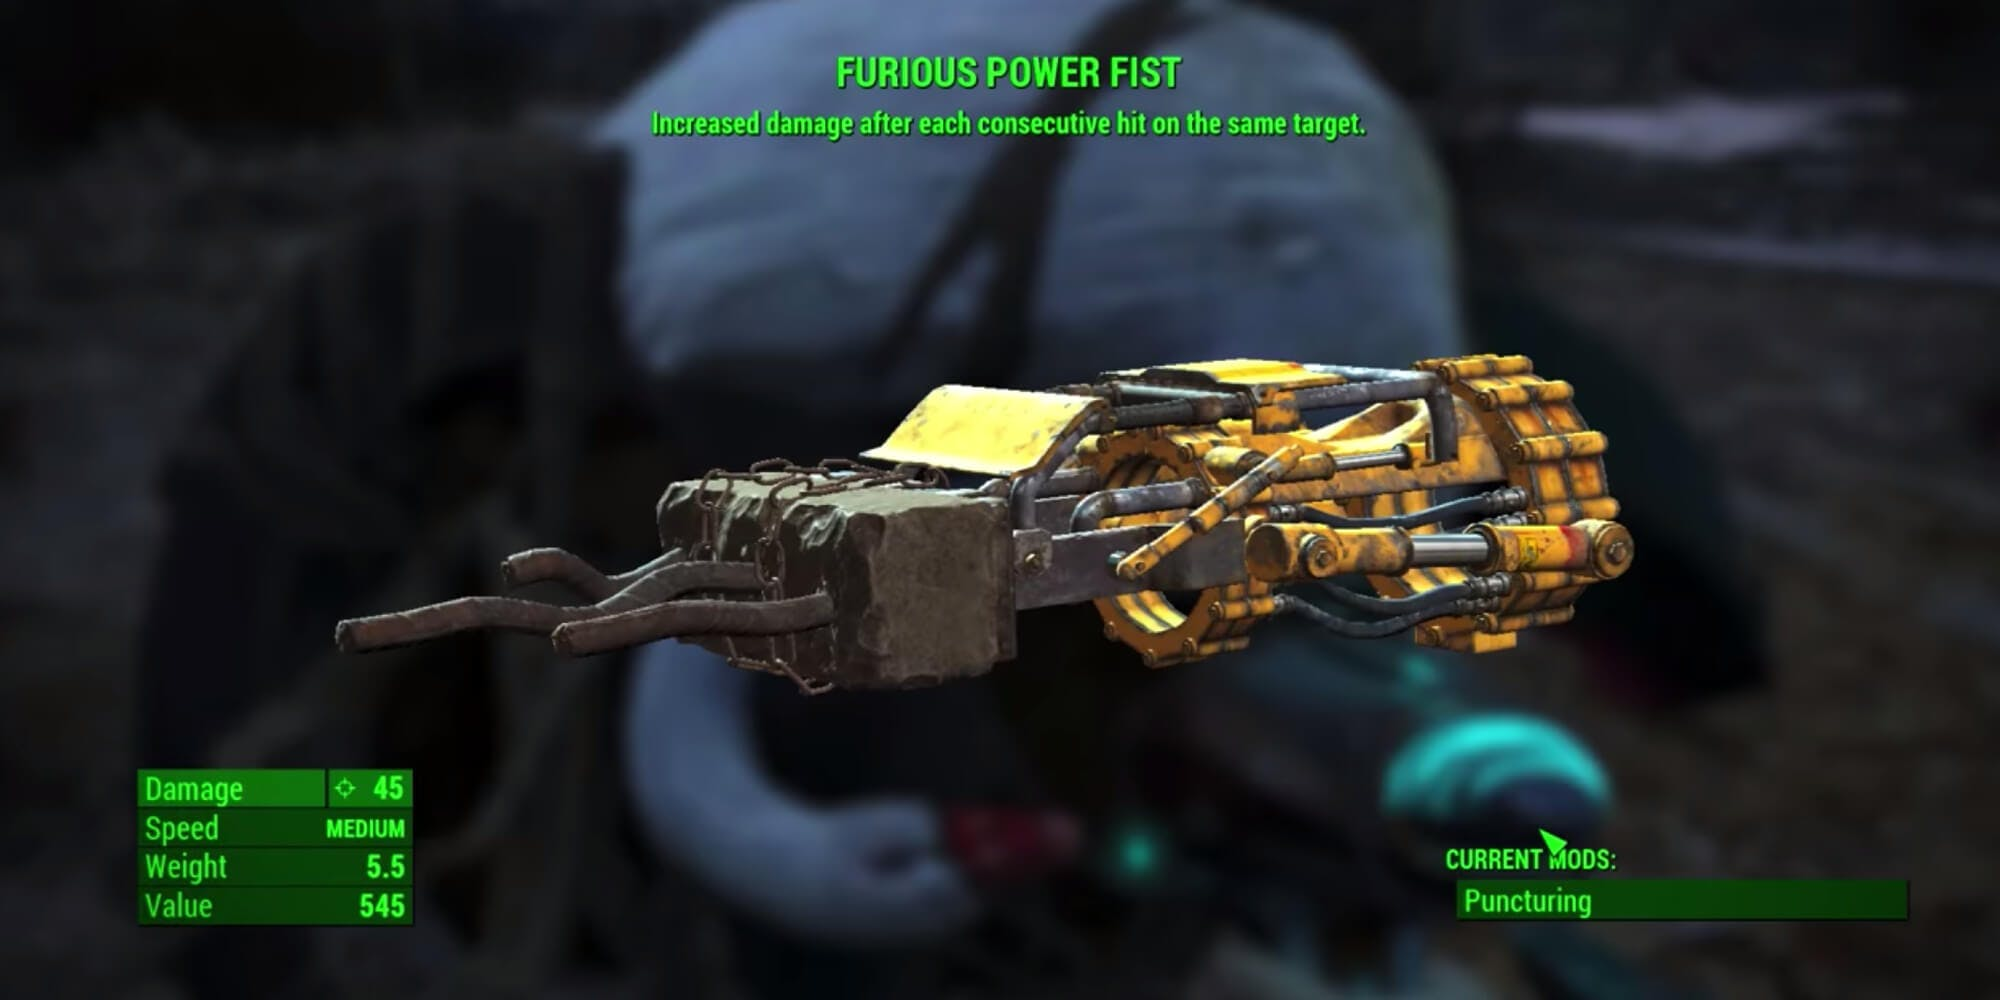 Fallout 4 weapons - Furious Power Fist